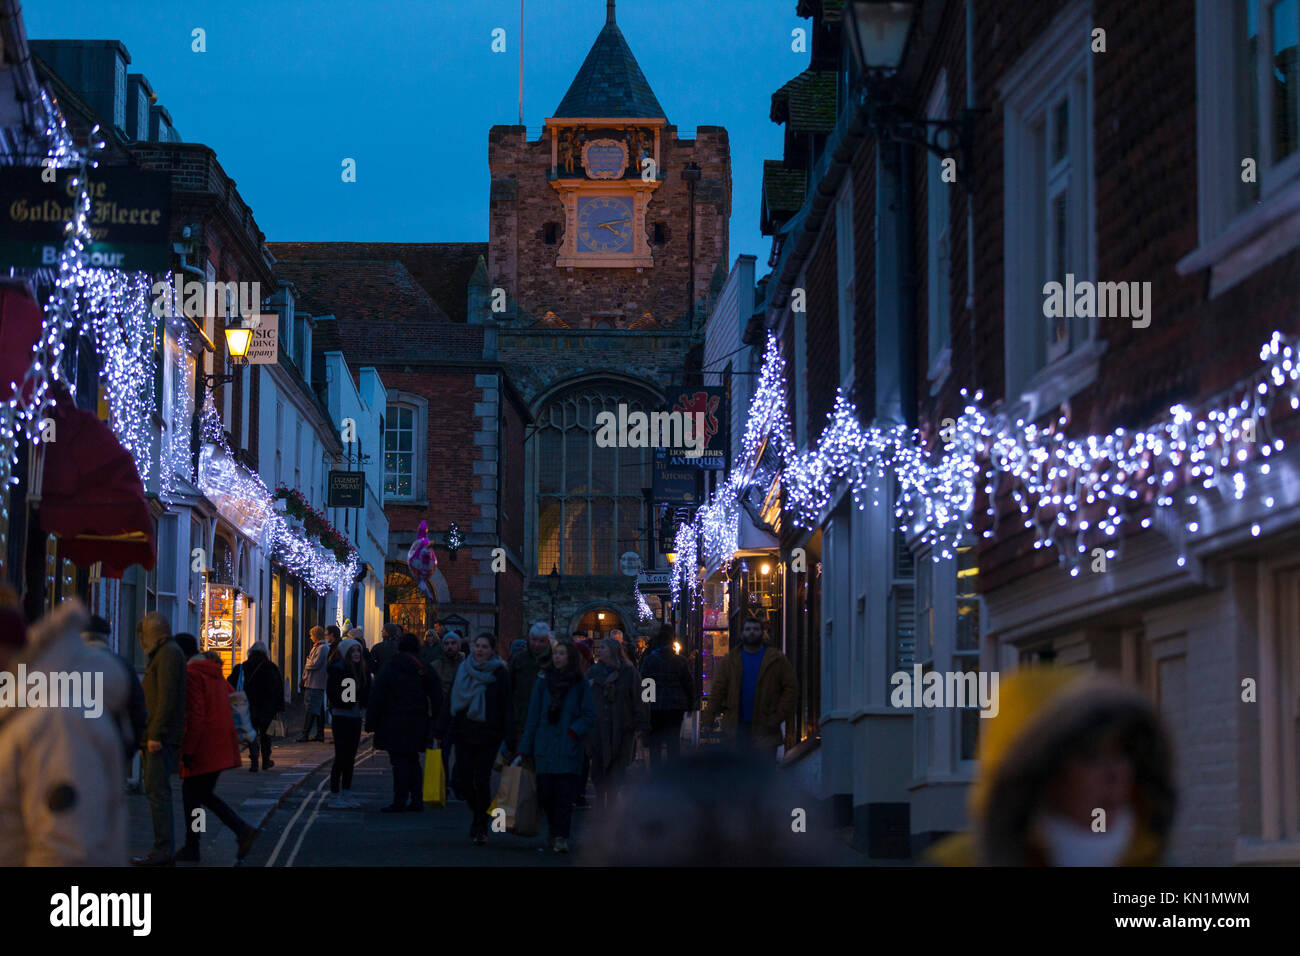 Rye, East Sussex, UK. 9th December, 2017. The ancient town of Rye Christmas festival which takes place along the Stock Photo